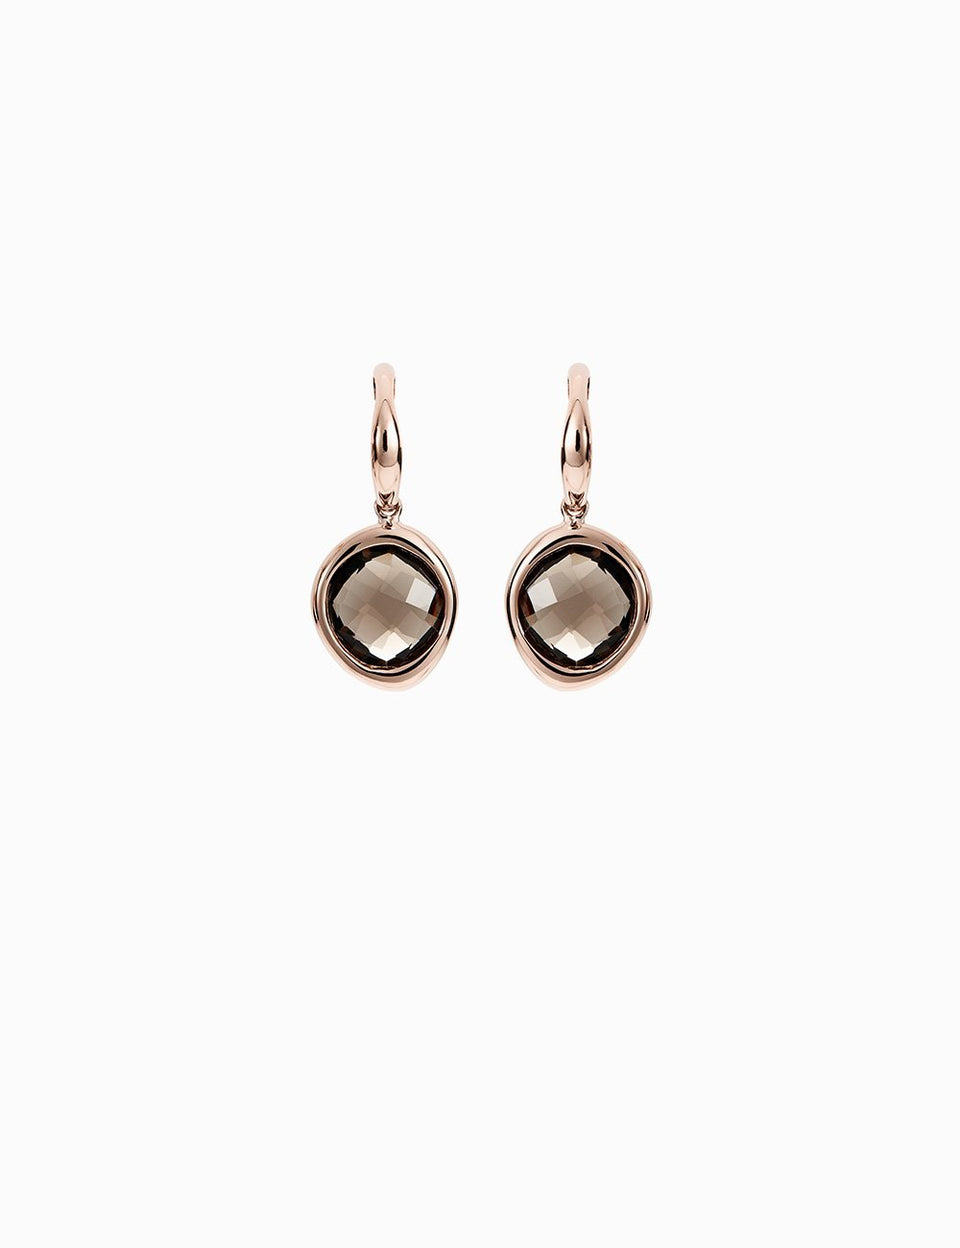 Roosik&Co - Earrings - Pink Gold and Smoky Quartz